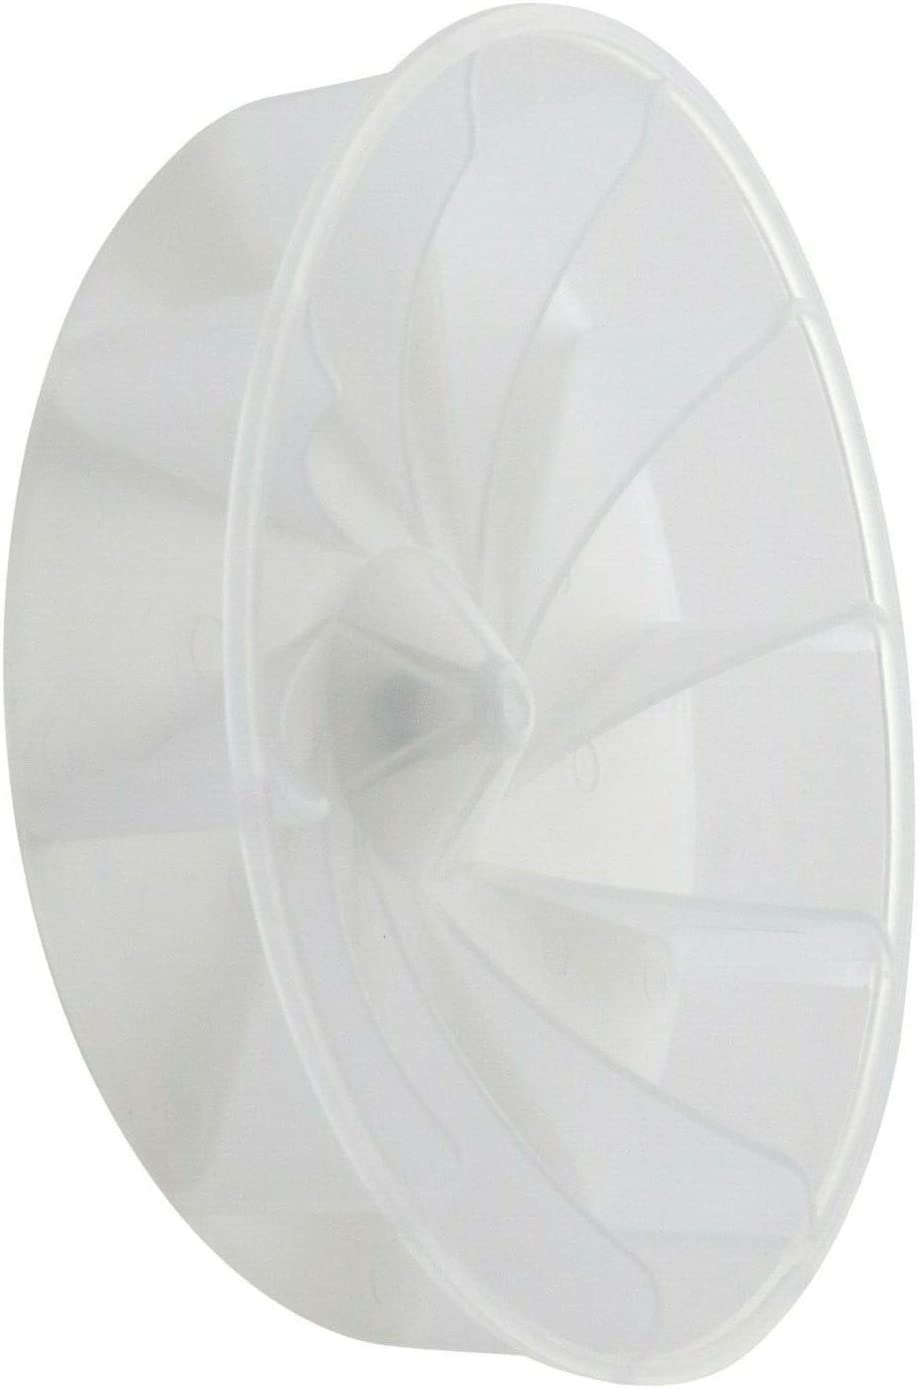 NEW Nutone compatible Limited time sale with Broan Fan Wheel Blower Pa Replacement Special price